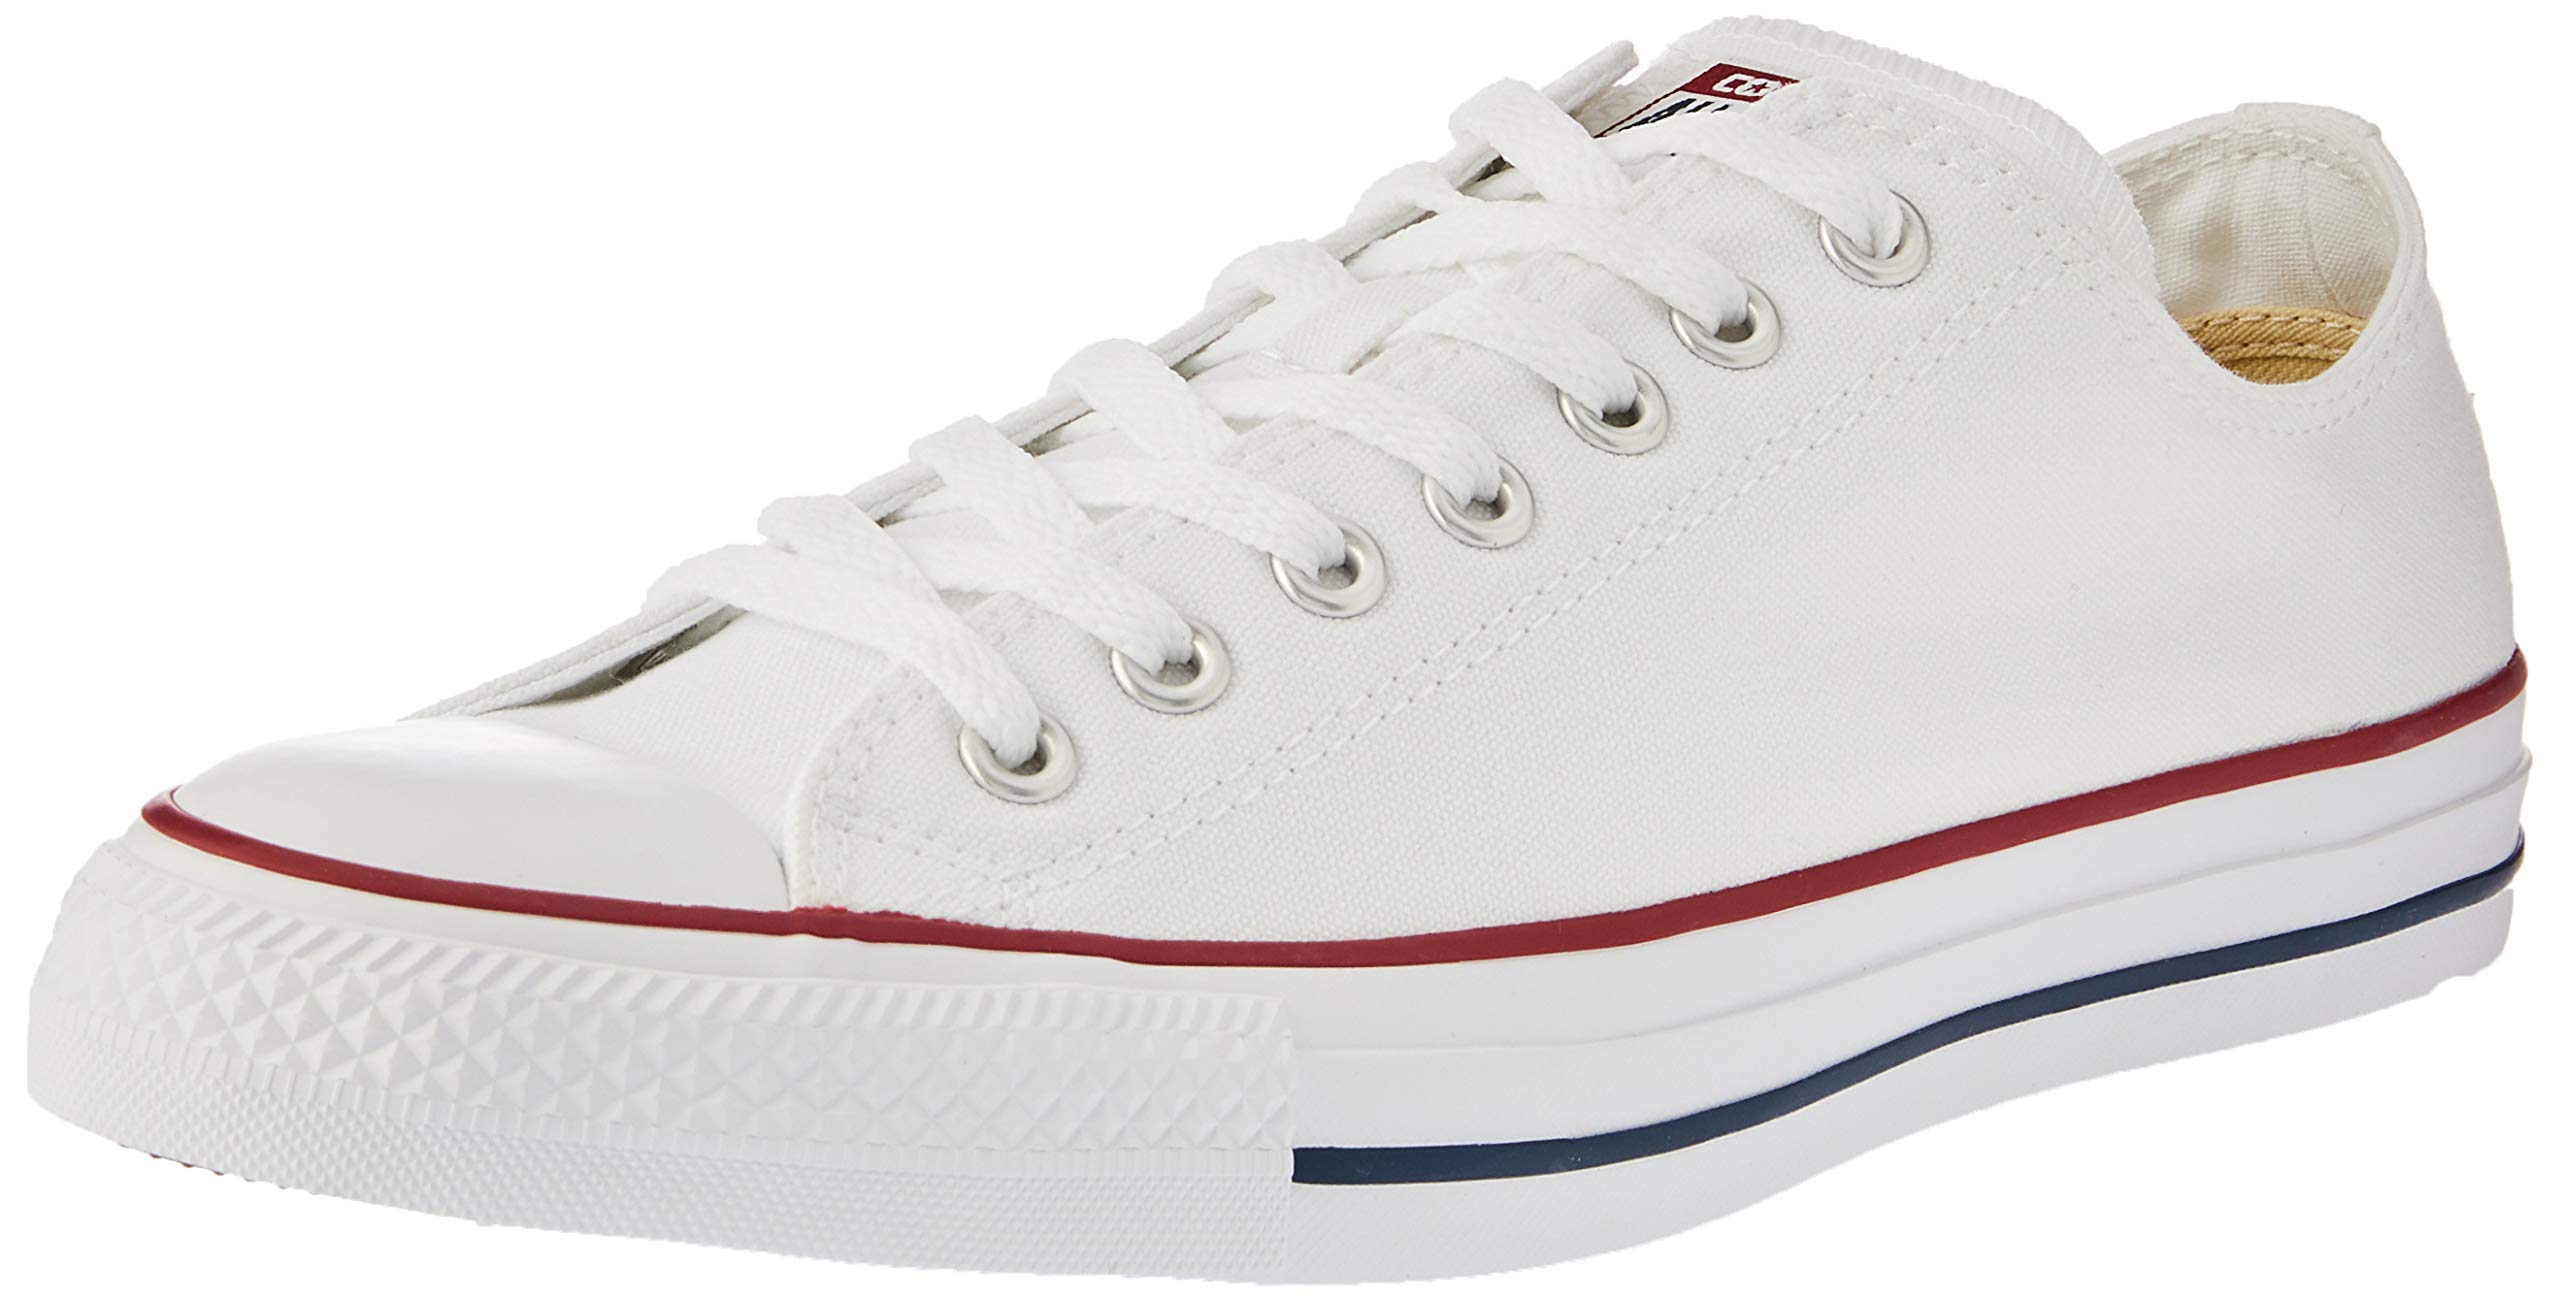 Converse Chuck Taylor All Star Low Top,Optical White,9.5 M US